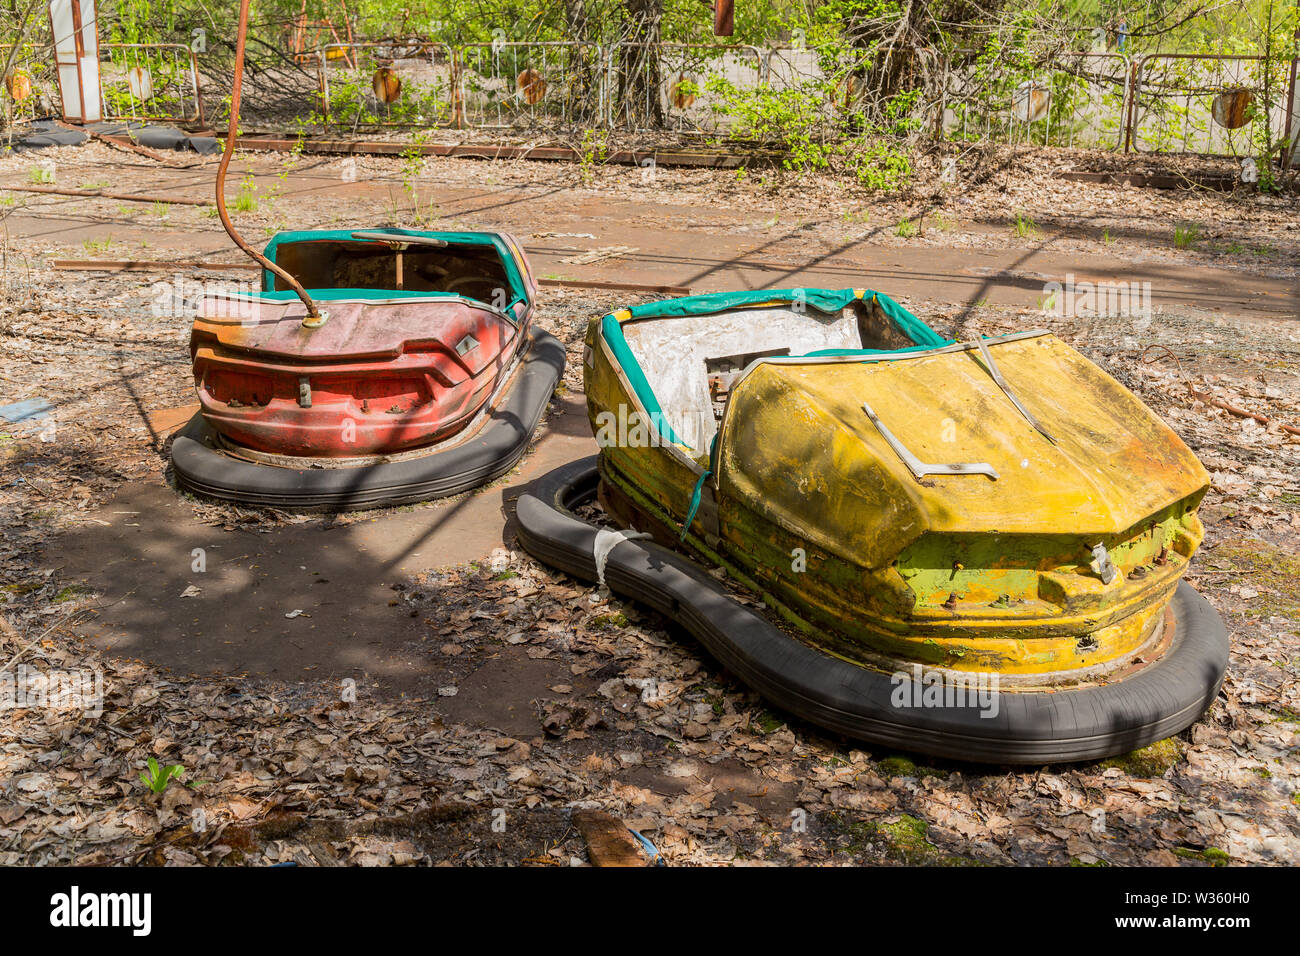 Old broken rusty metal radioactive children's electric cars  abandoned, the park of culture and recreation in the city of Pripyat, the Chernobyl disas - Stock Image